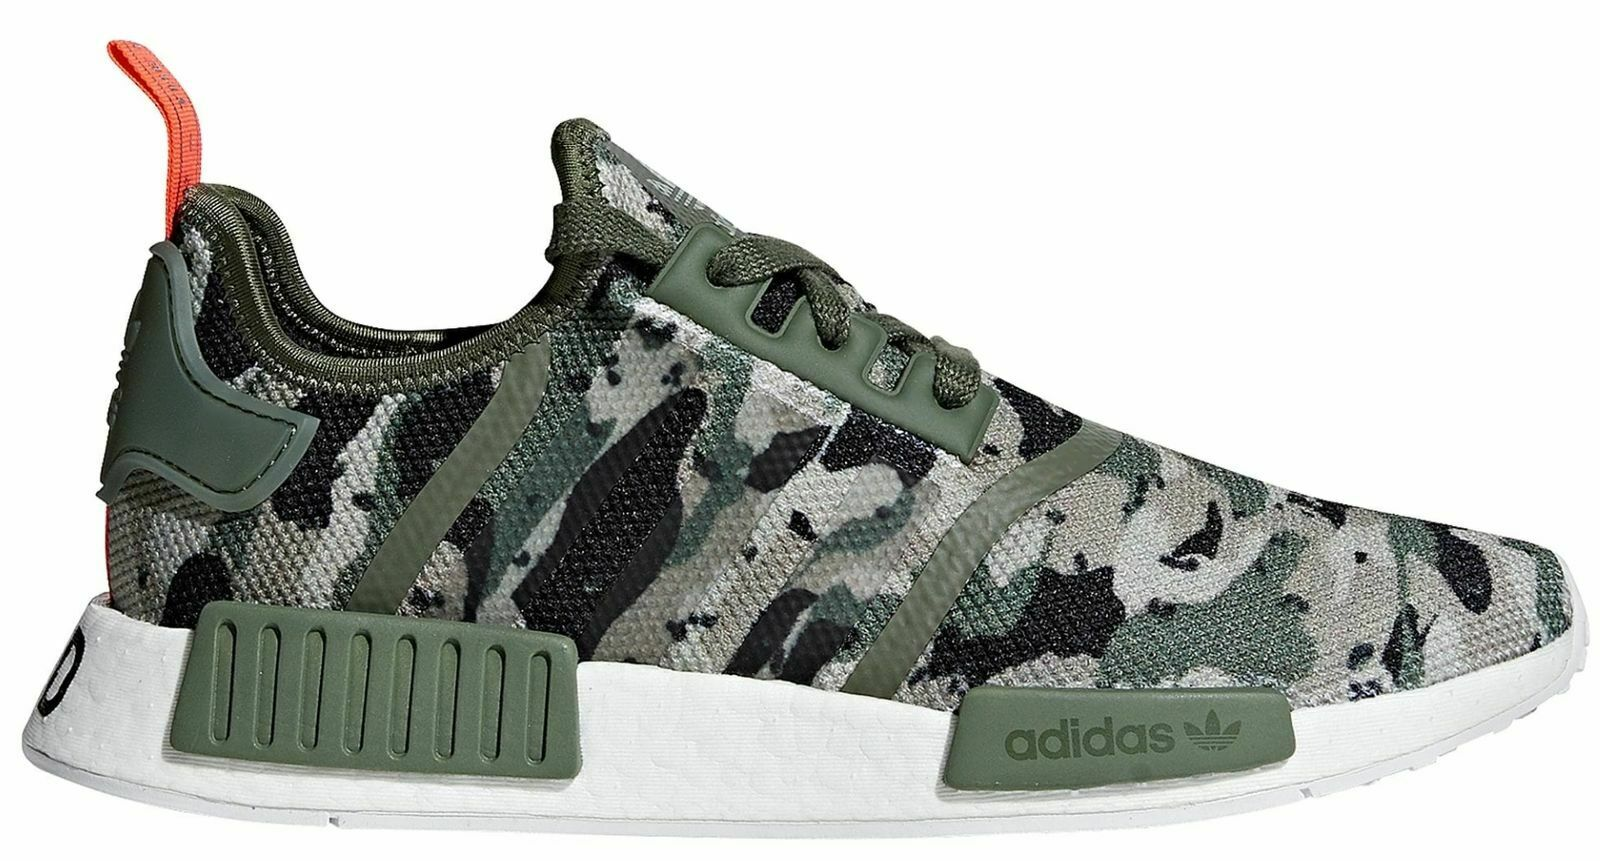 NEW Adidas NMD R1 Men's 11 shoes Camo Olive Green orange Nomad Boost G27914